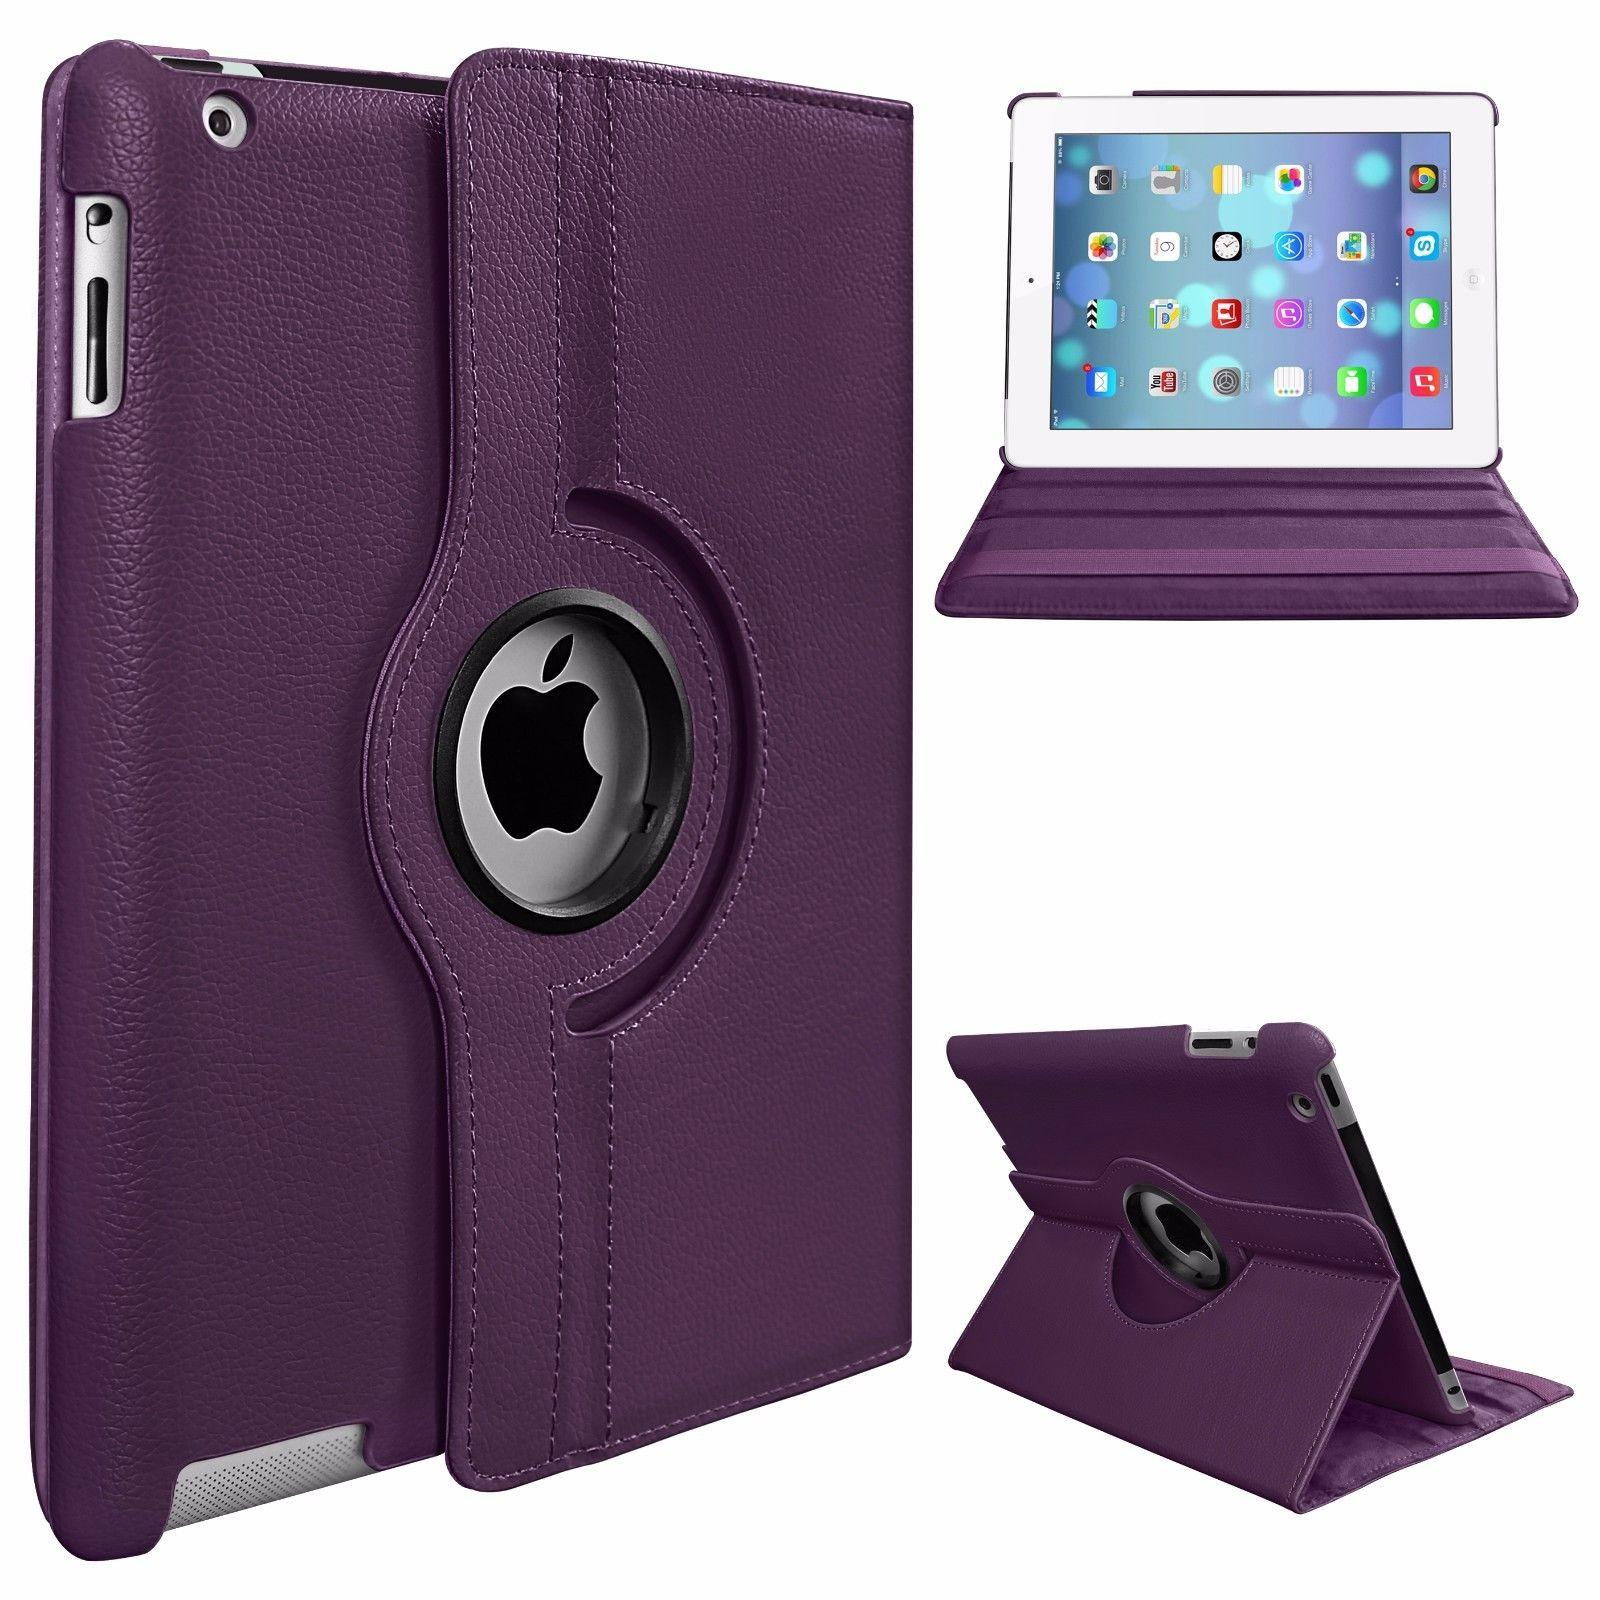 360 Degree Rotating Stand PU Leather Case Cover for Apple iPad2 iPad3 iPad4 - Violet - 23761536 , 1810318250412 , 62_22819429 , 177000 , 360-Degree-Rotating-Stand-PU-Leather-Case-Cover-for-Apple-iPad2-iPad3-iPad4-Violet-62_22819429 , tiki.vn , 360 Degree Rotating Stand PU Leather Case Cover for Apple iPad2 iPad3 iPad4 - Violet